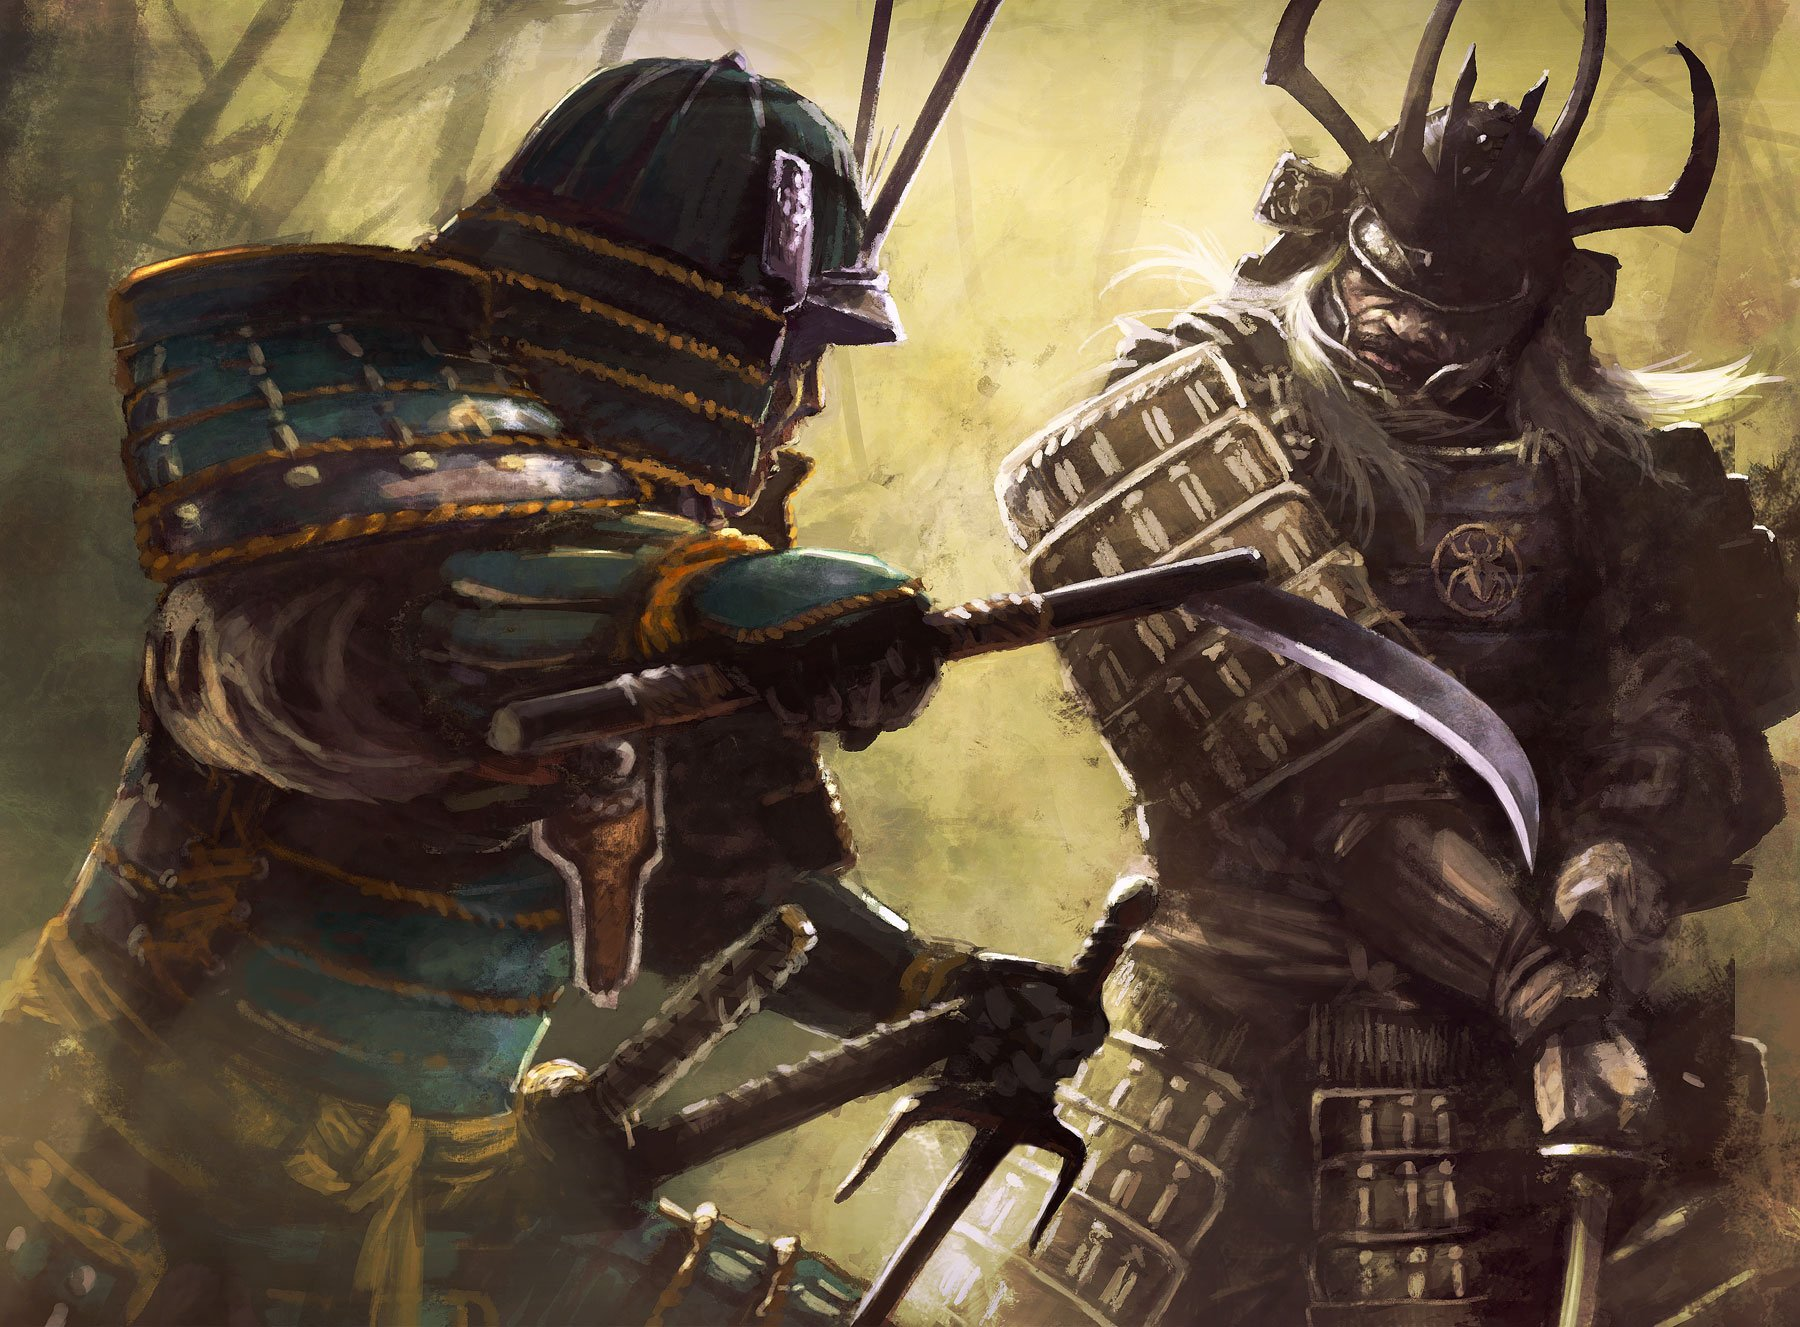 Shogun 2 Fall Of The Samurai Wallpaper L5r Legend Of The Five Rings Fantasy Online Cardgame